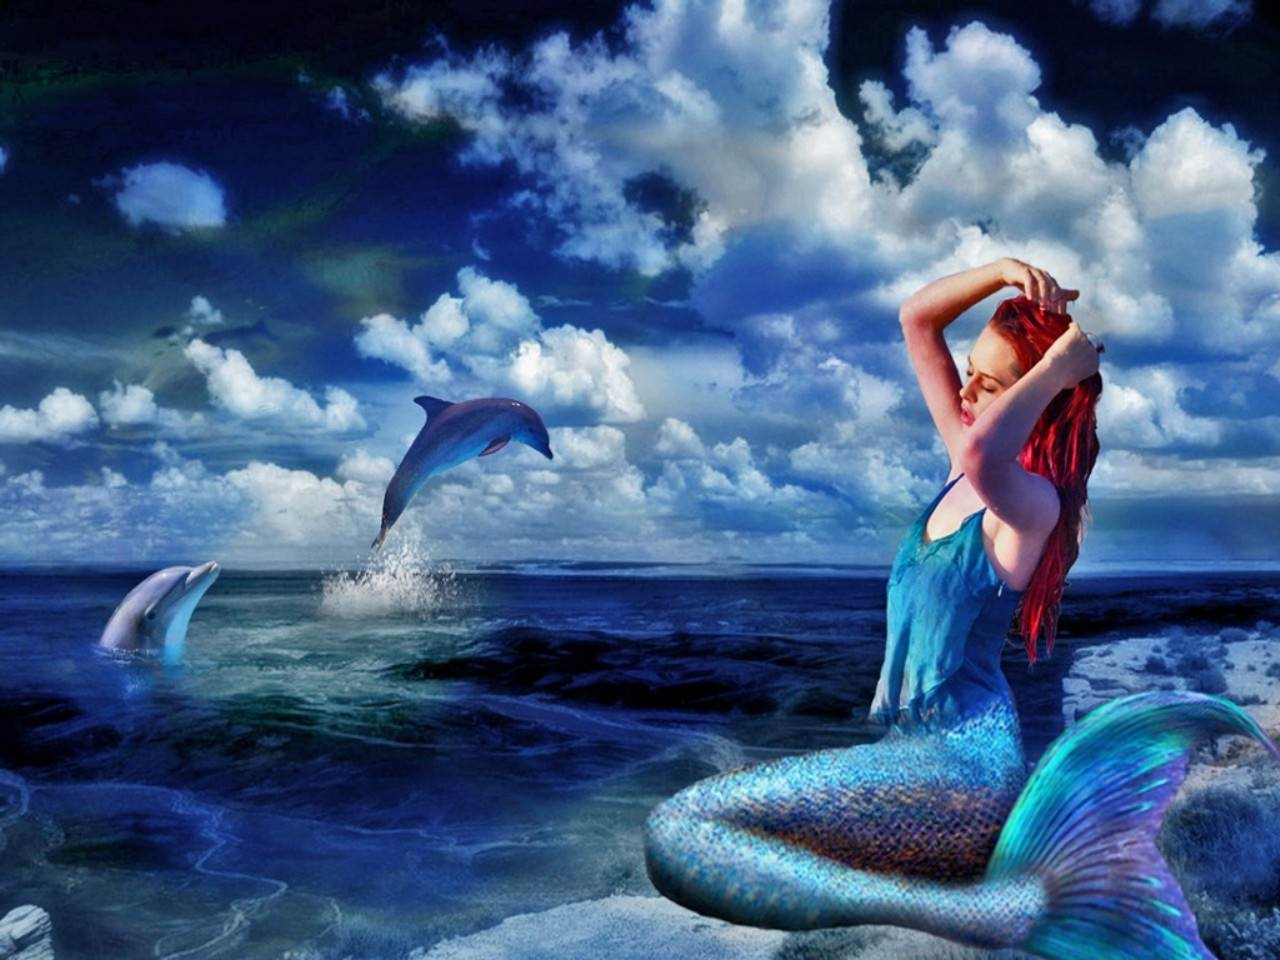 Mermaid Chilling With Dolphins Wallpaper